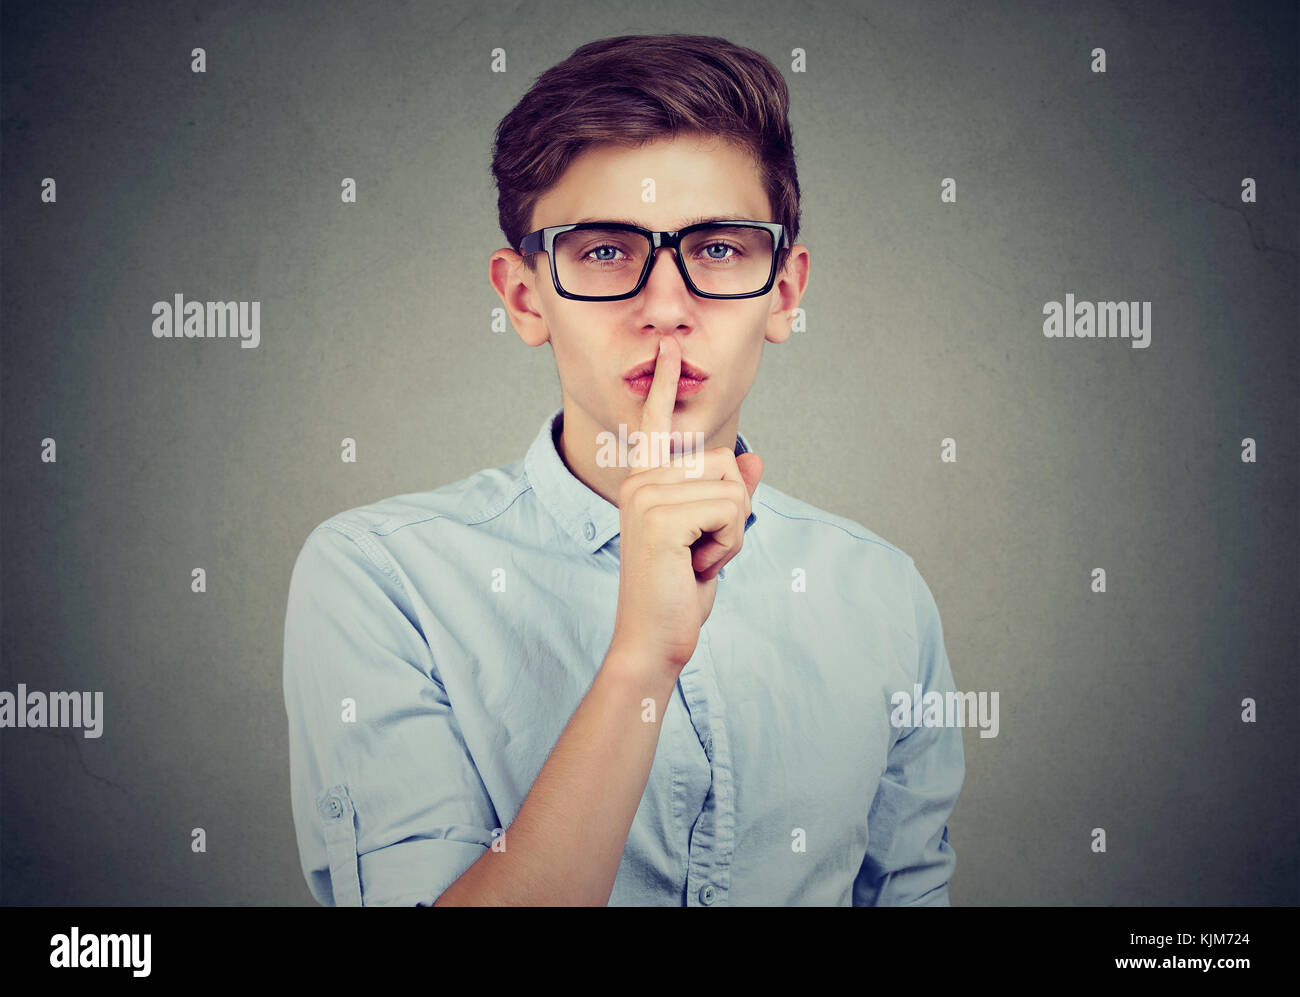 Secret guy. Man saying hush be quiet with finger on lips gesture looking at camera isolated on gray wall background. - Stock Image